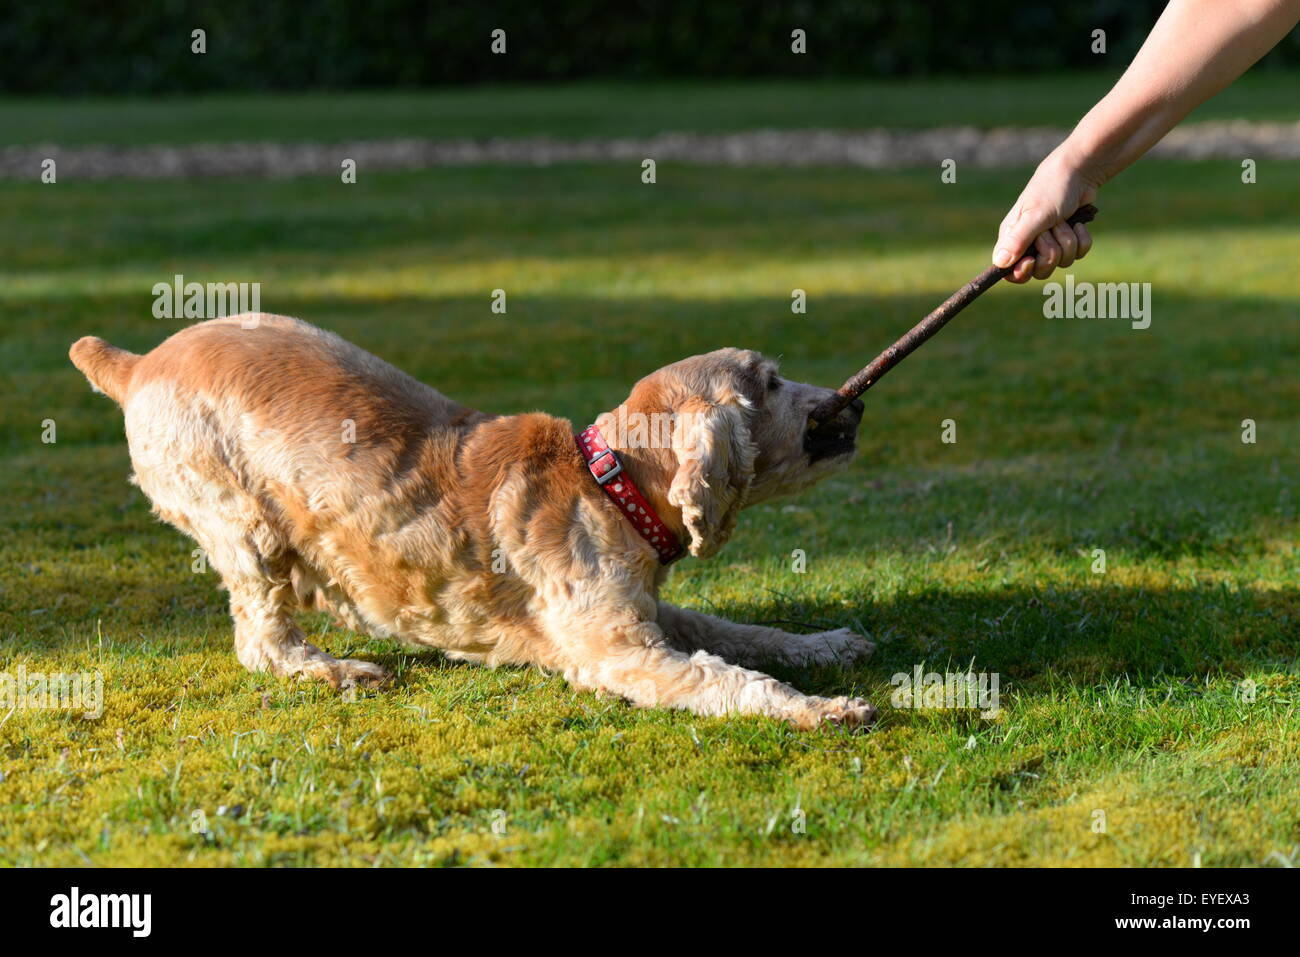 Golden cocker spaniel dog tugging on a stick with its owner. - Stock Image